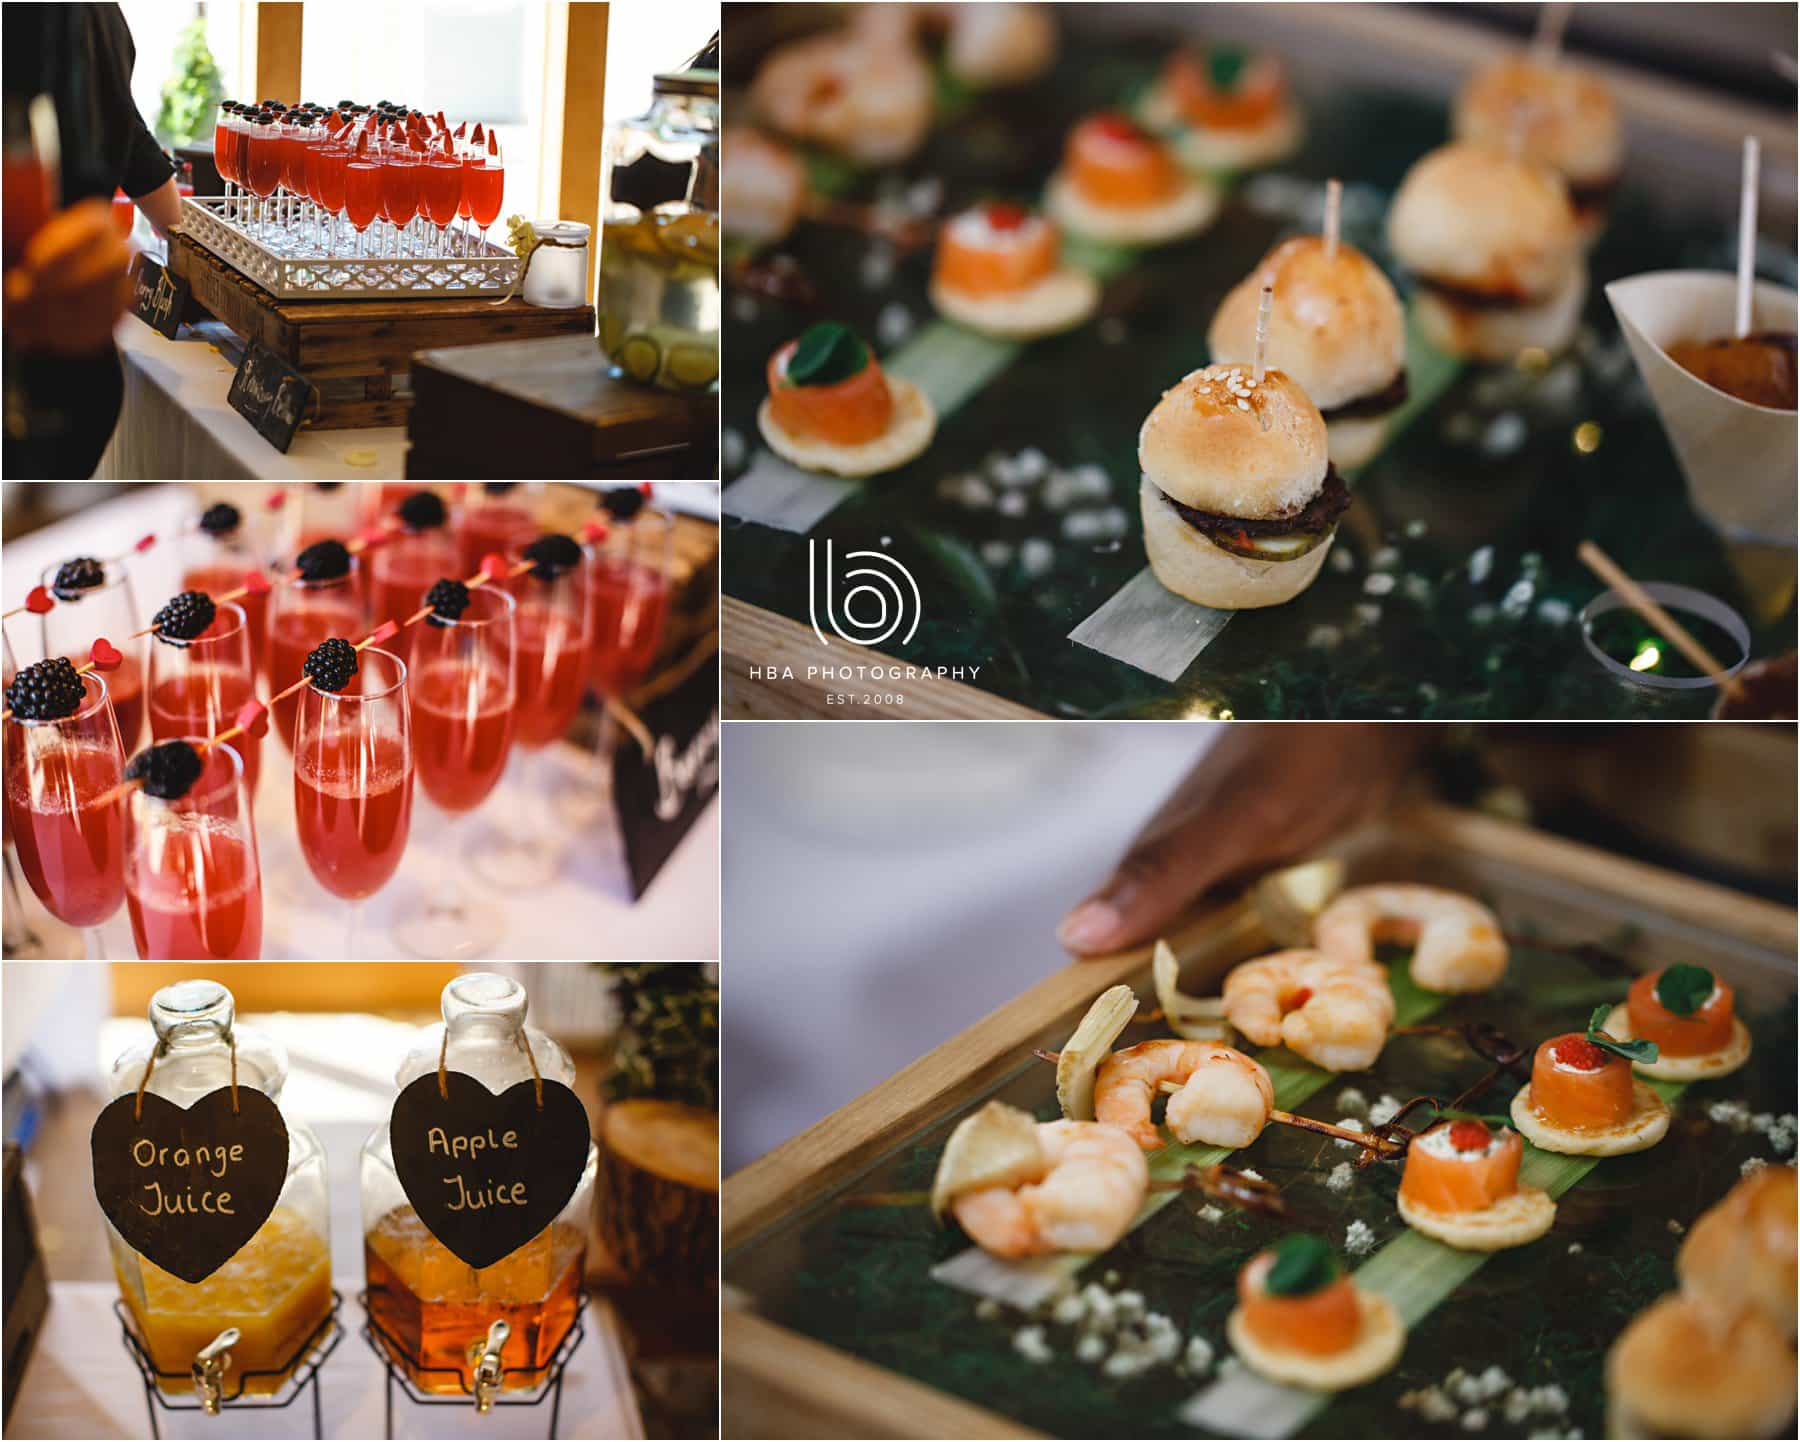 the canapes and drinks at the wedding